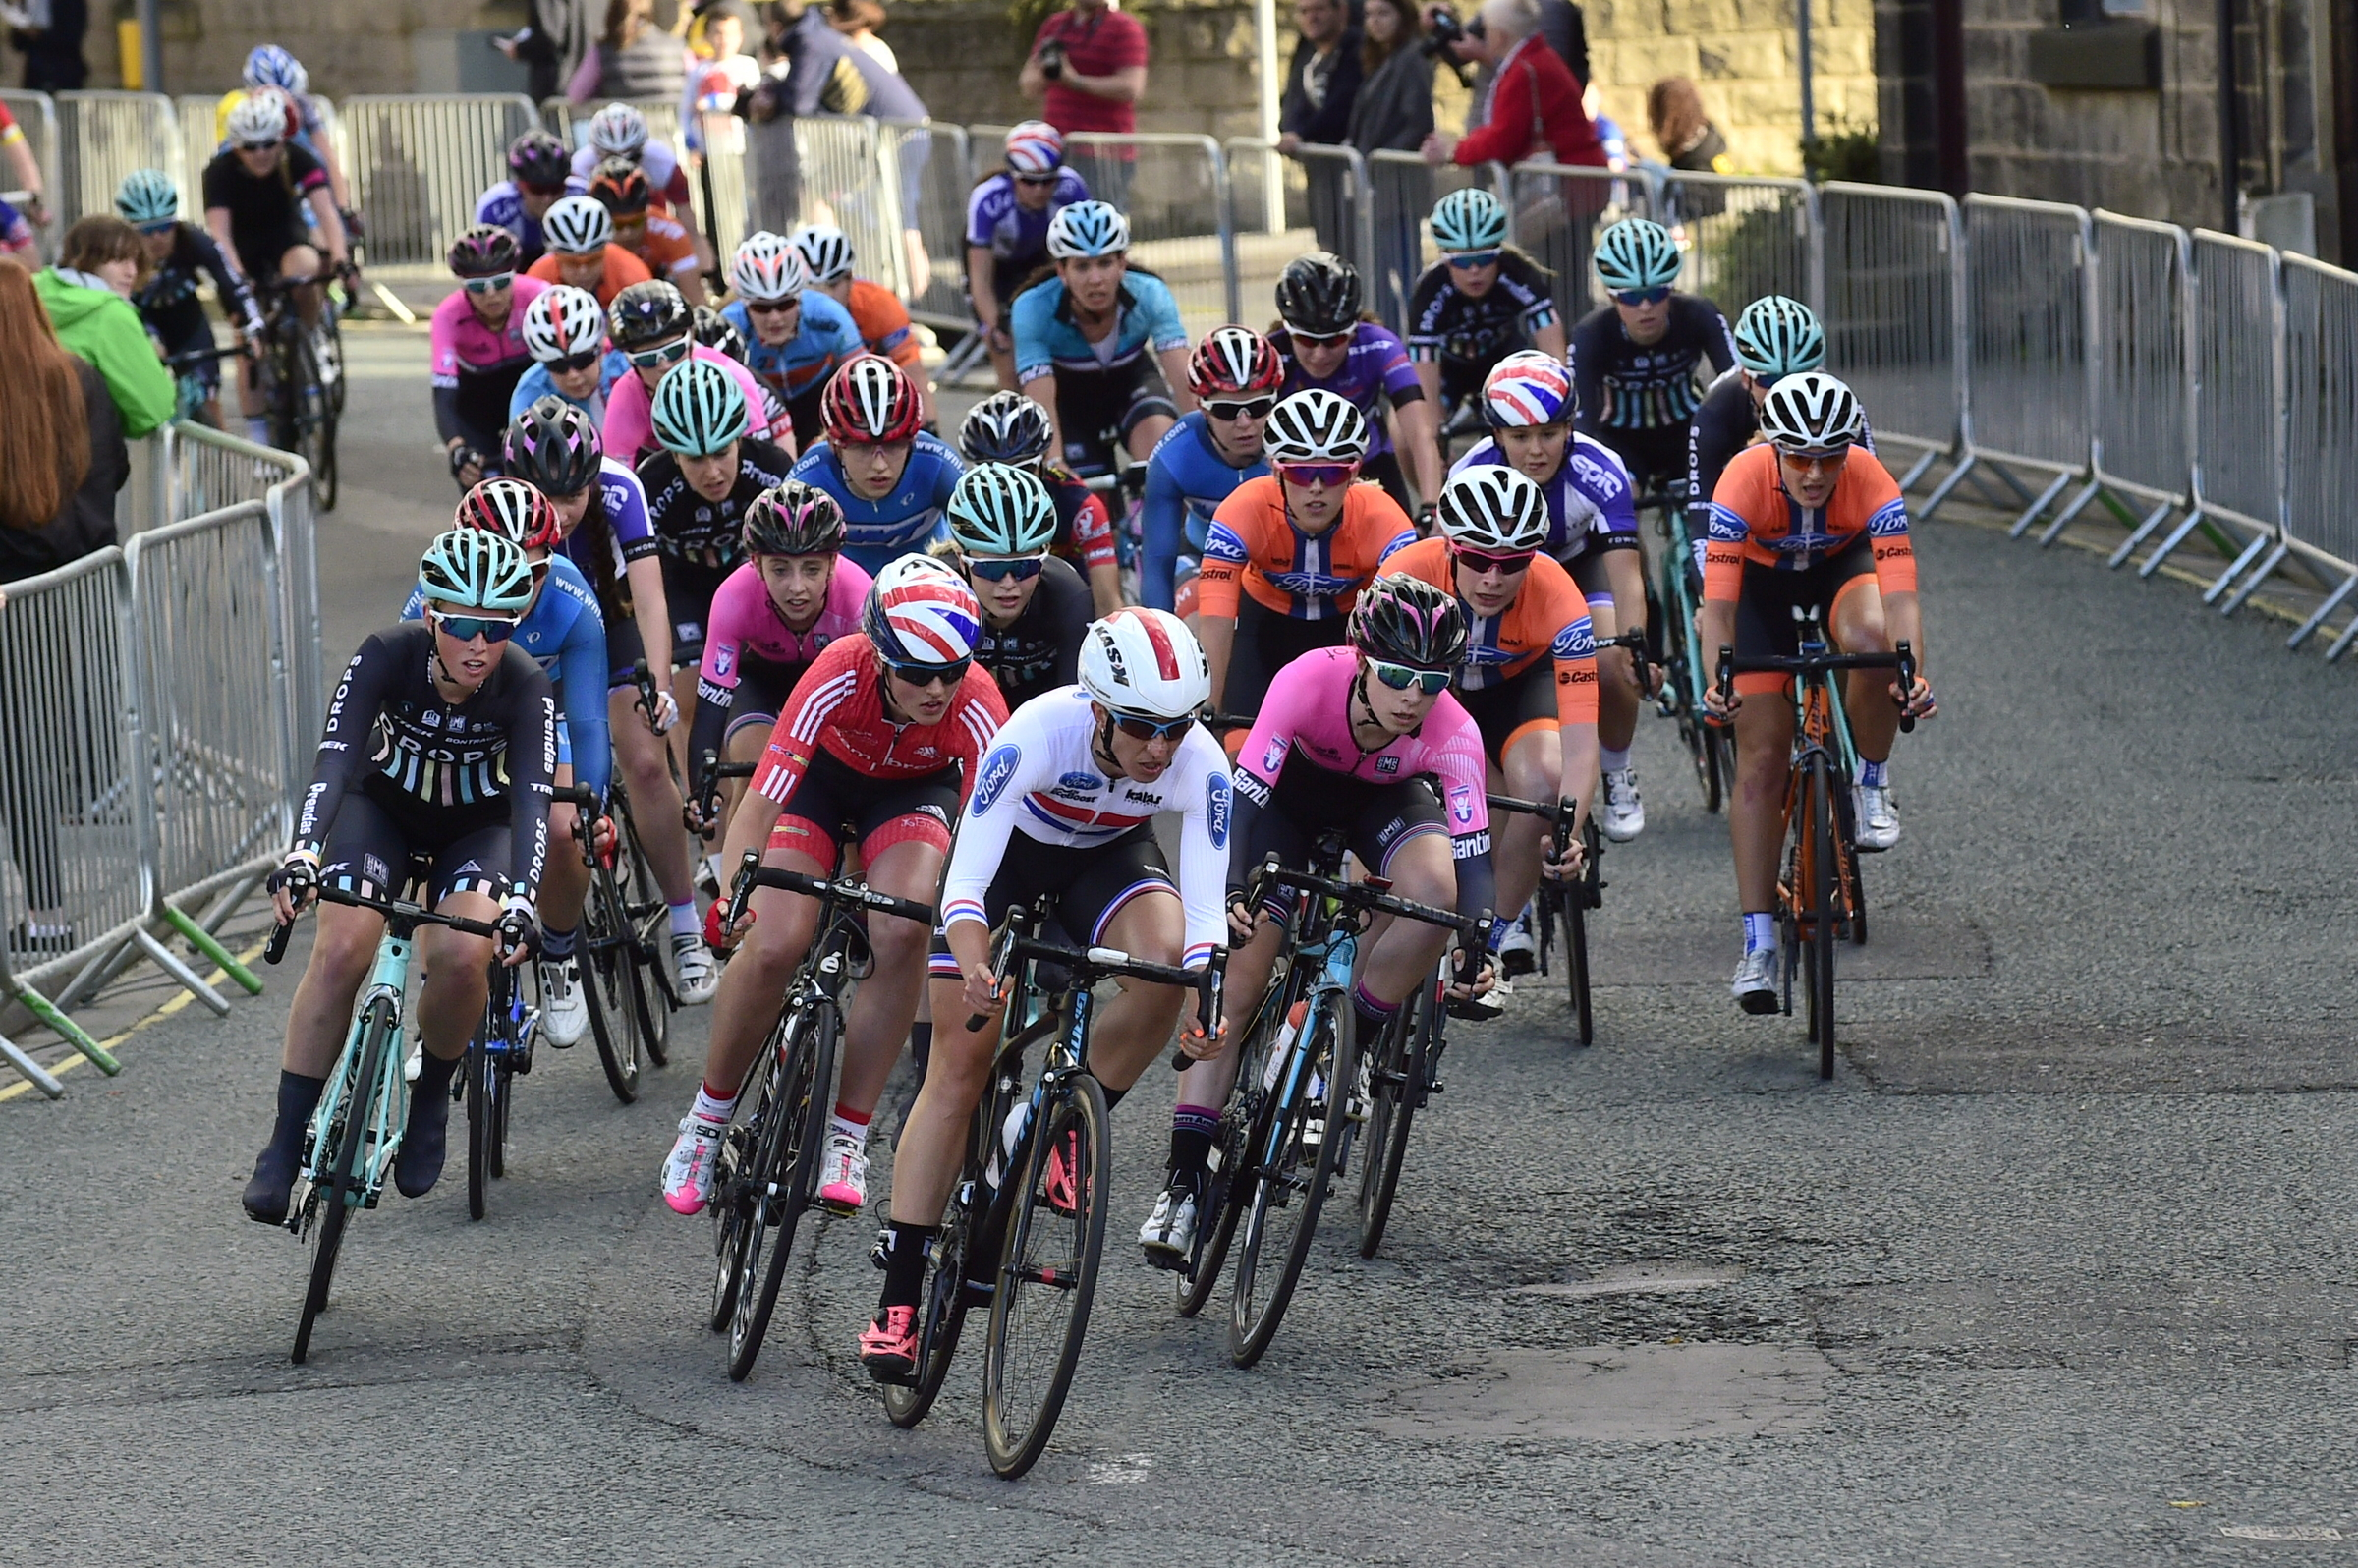 The Pinsent Masons Women's GP